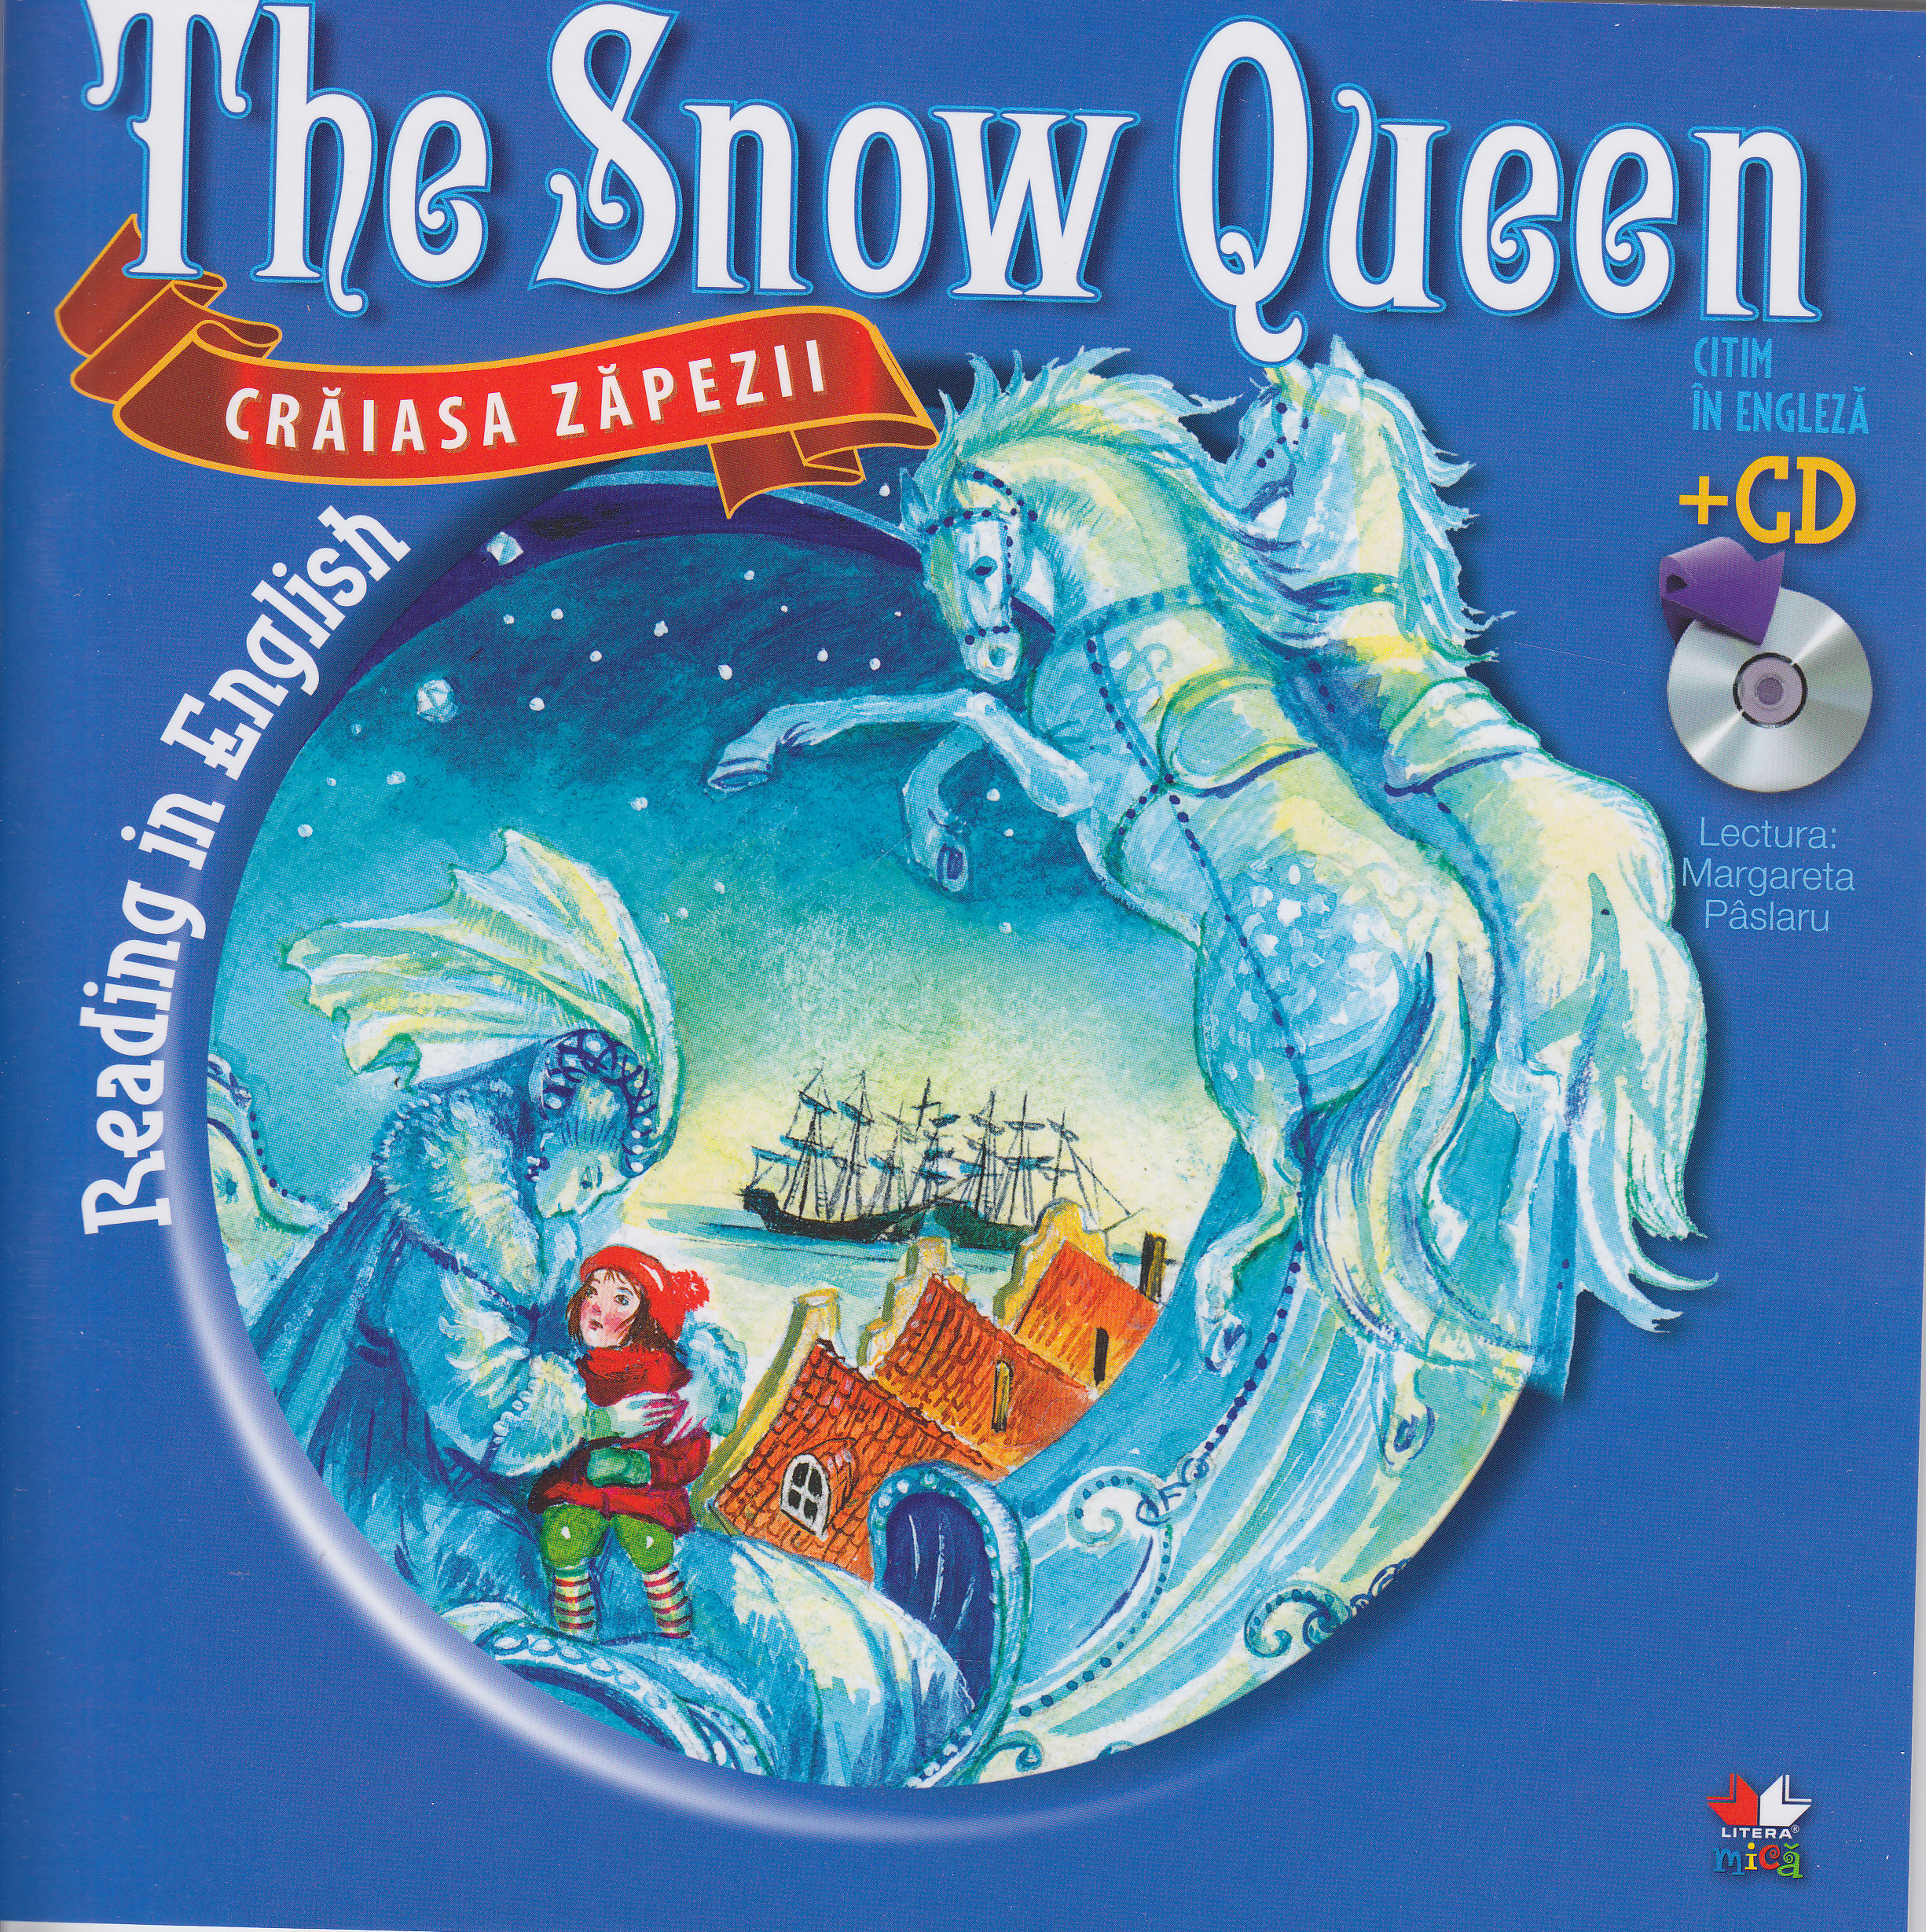 Craiasa zapezii. The snow queen. Reading in english + Cd. lectura: Margareta Paslaru thumbnail